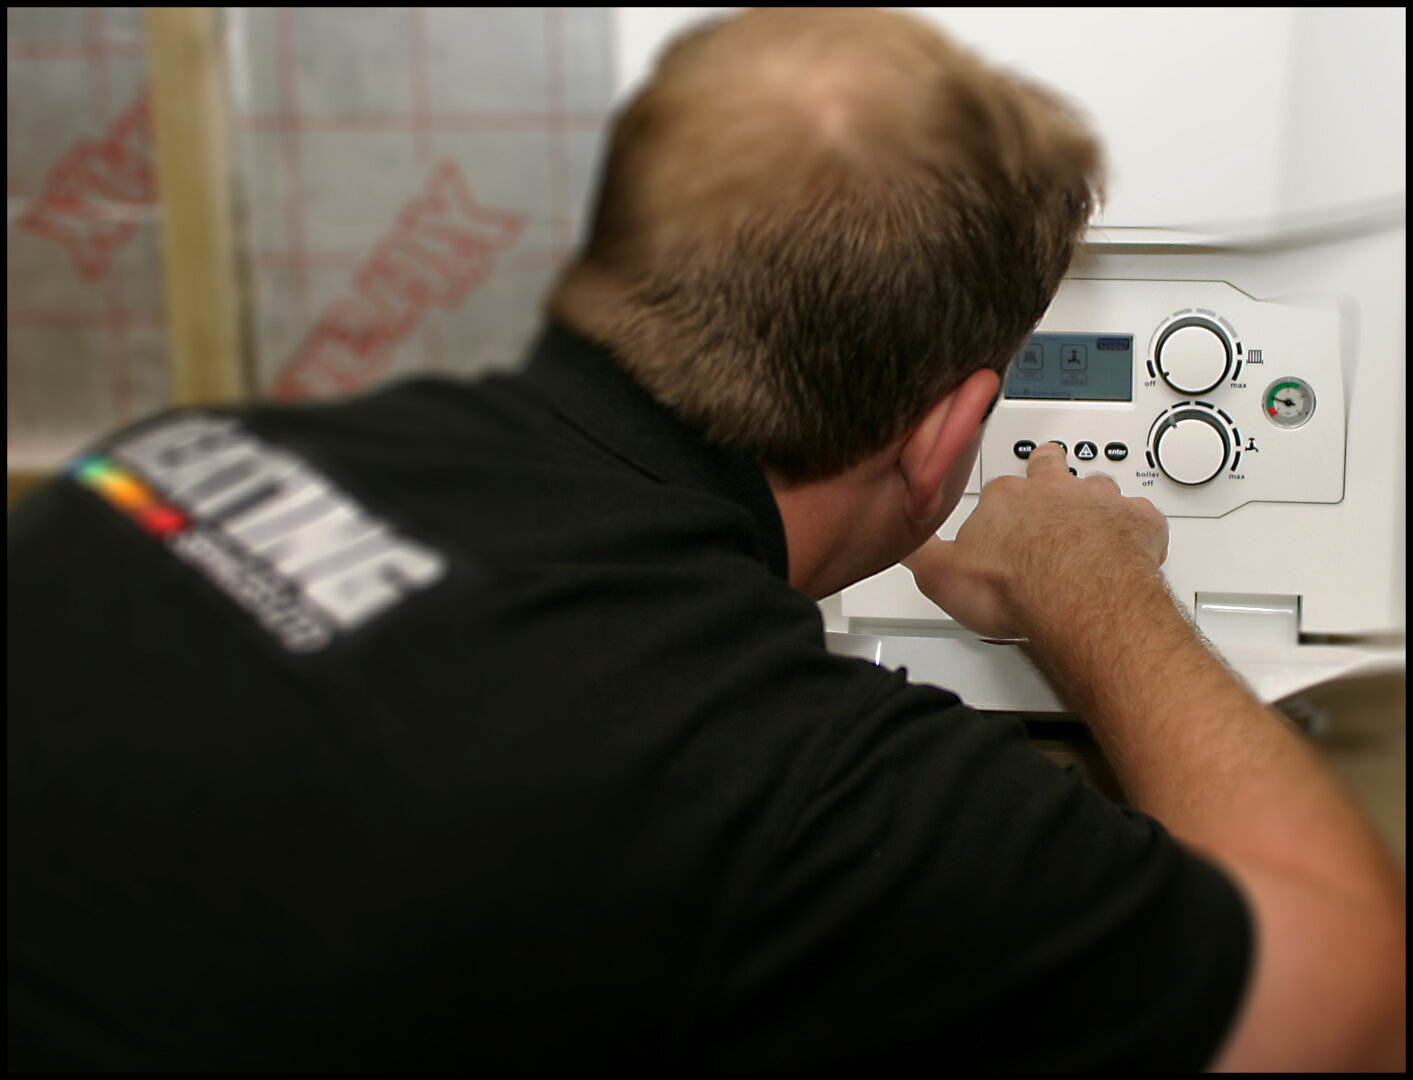 Plumbers Boiler Installation Service and Repairs and Bathroom Design and Installation by Heating Services Ltd in Edenbridge (5)